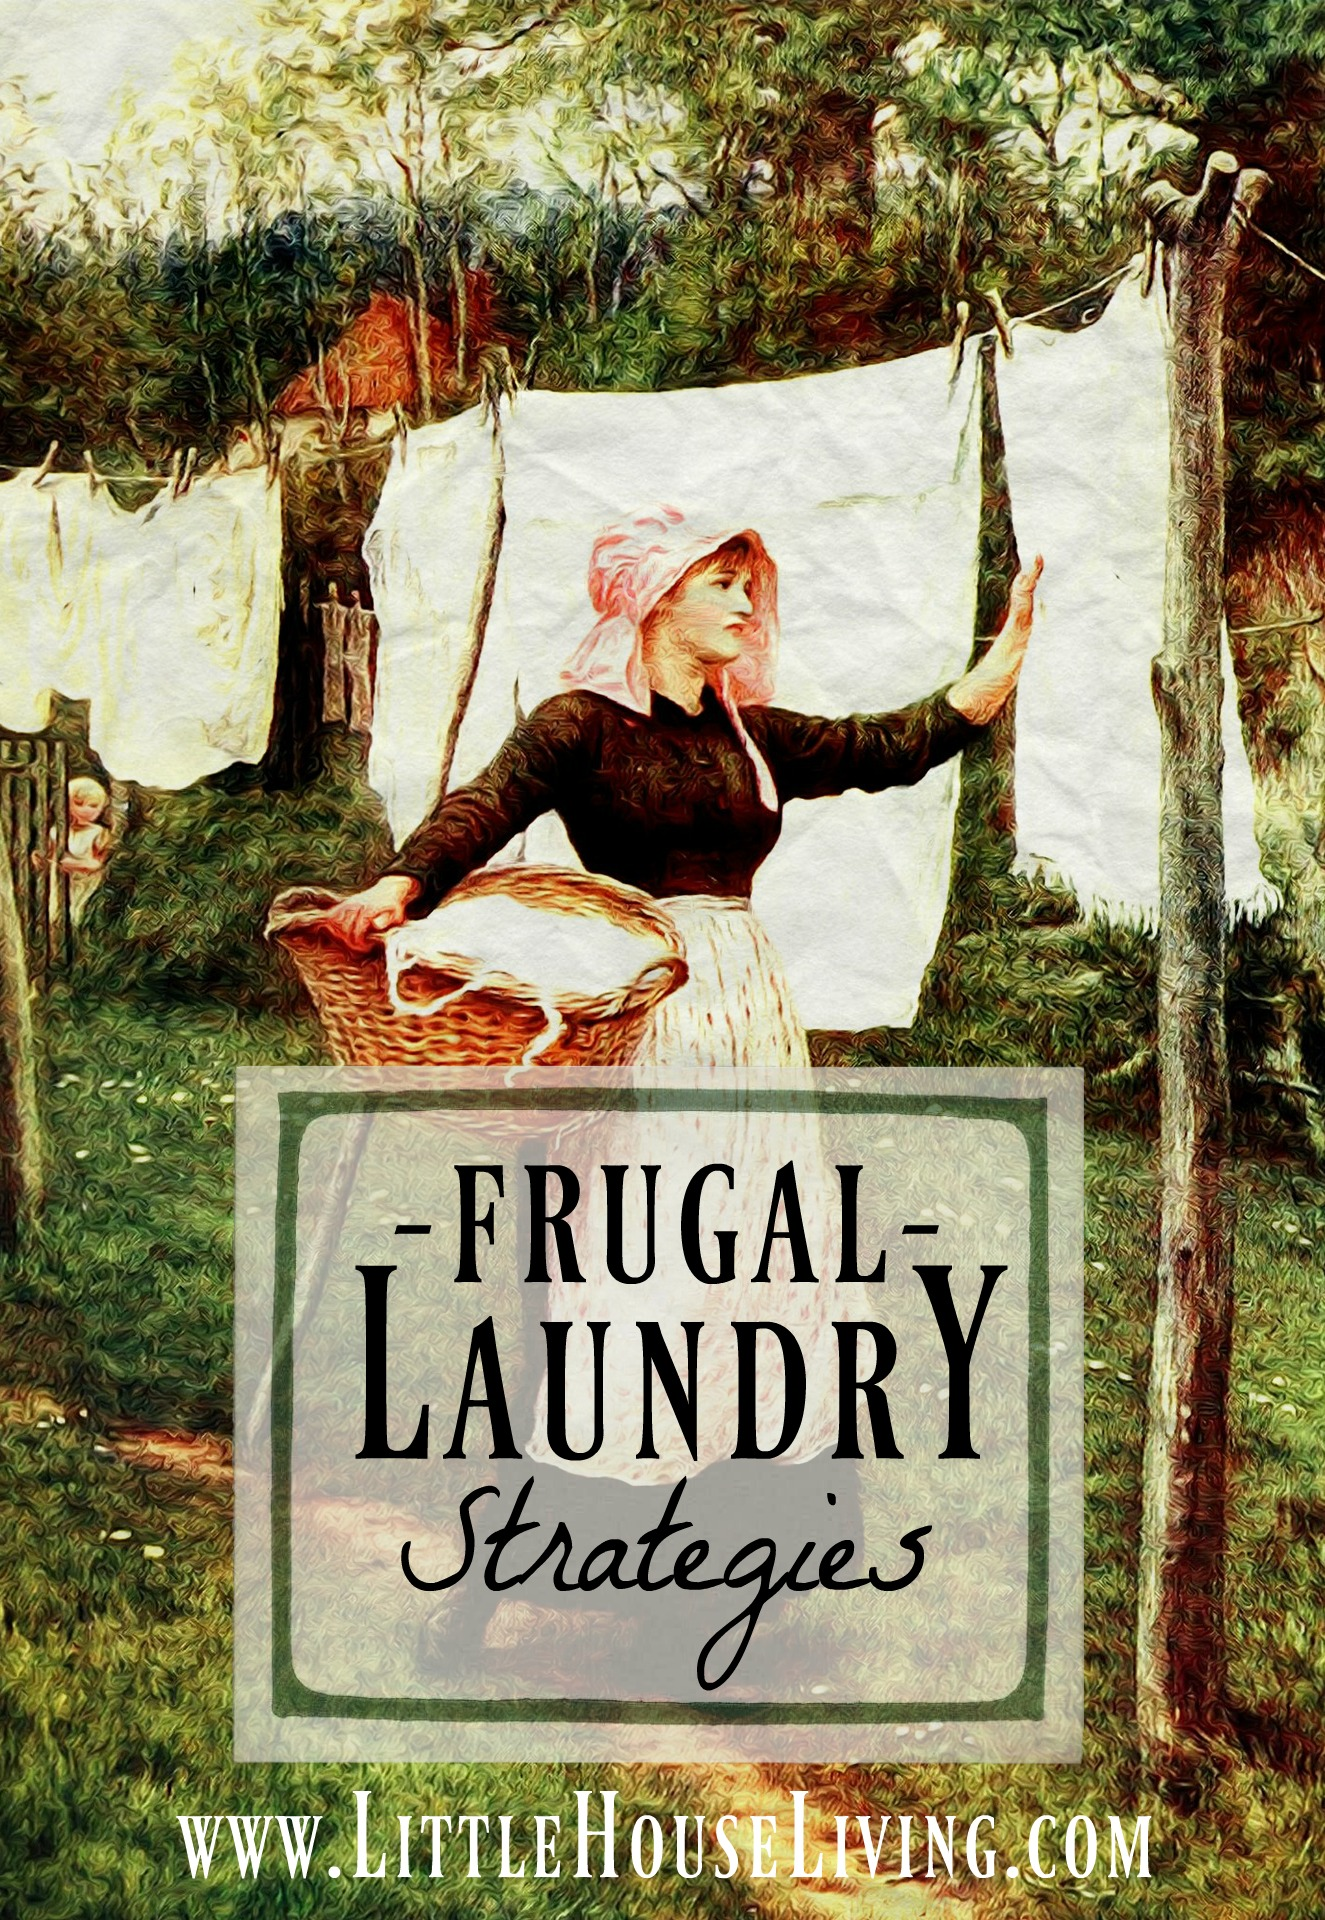 Want to save $$ on washing and drying your clothes...plus help your clothes last longer? These tips will save you over $500 a year! #savemoney #frugalliving